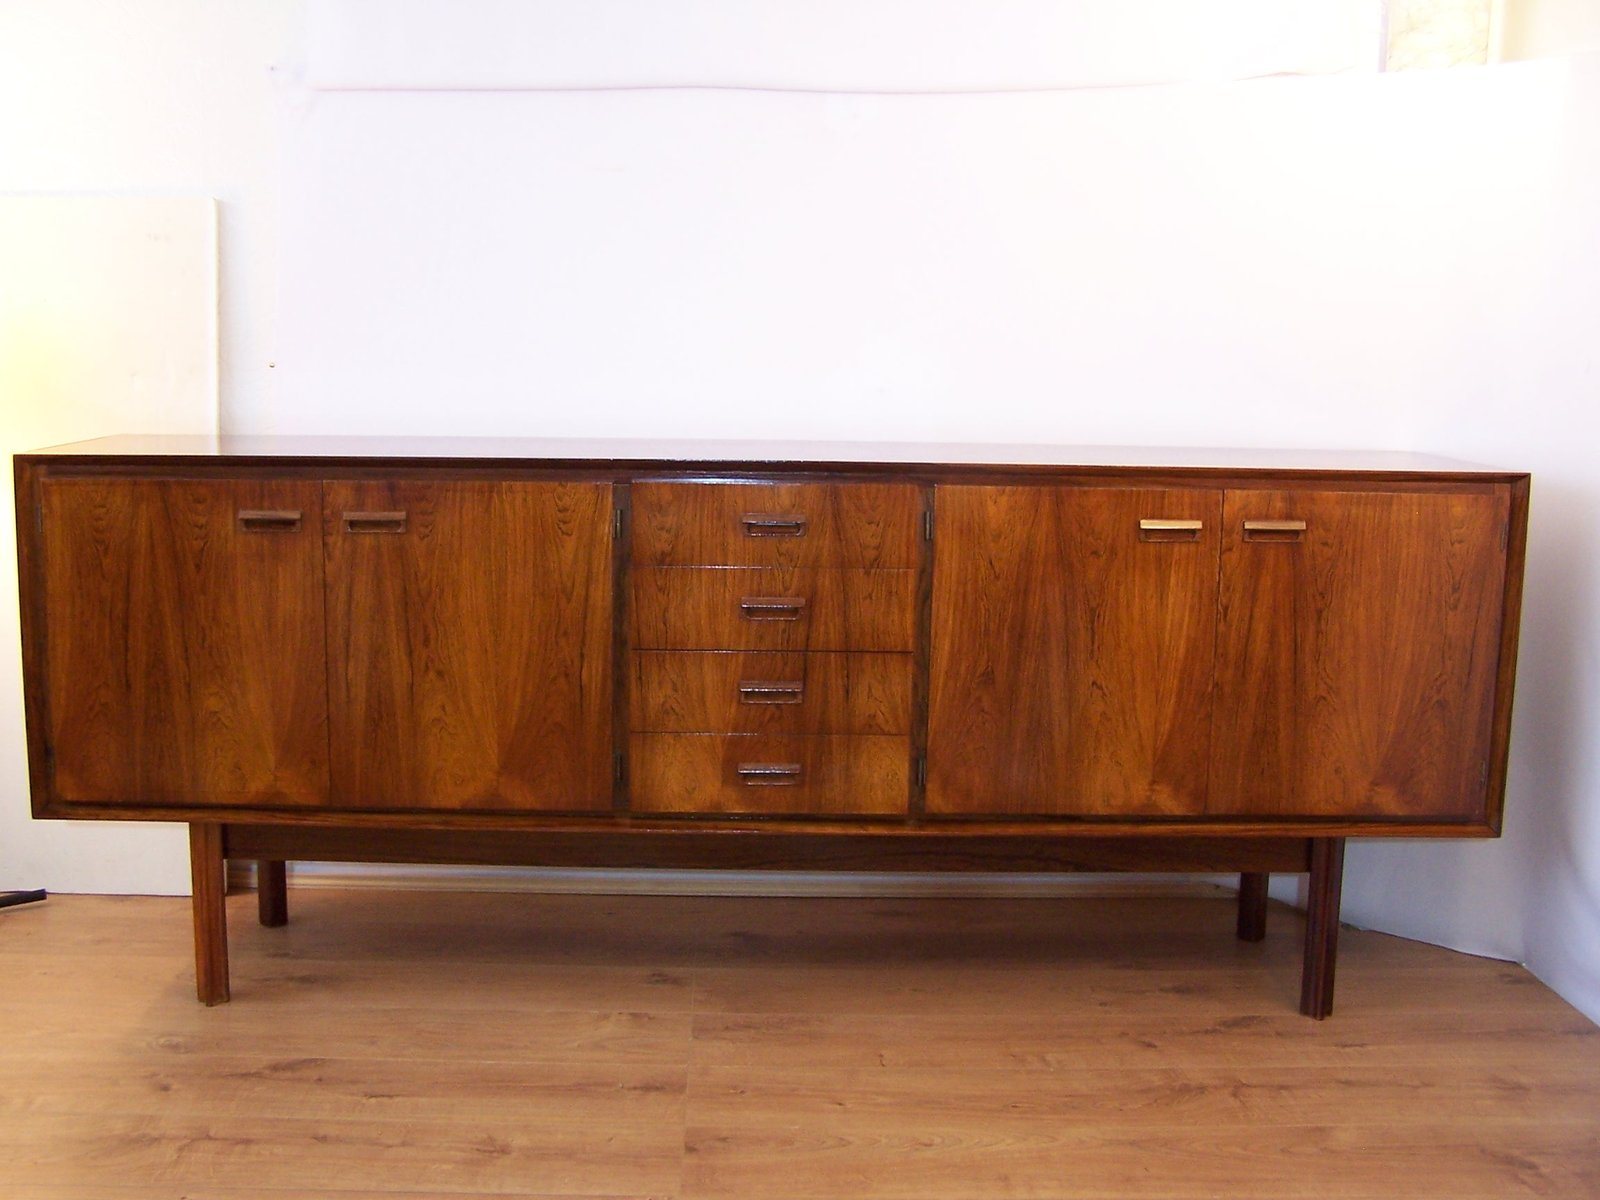 Rio rosewood sideboard from degorre 1967 for sale at pamono for Sideboard 220 cm